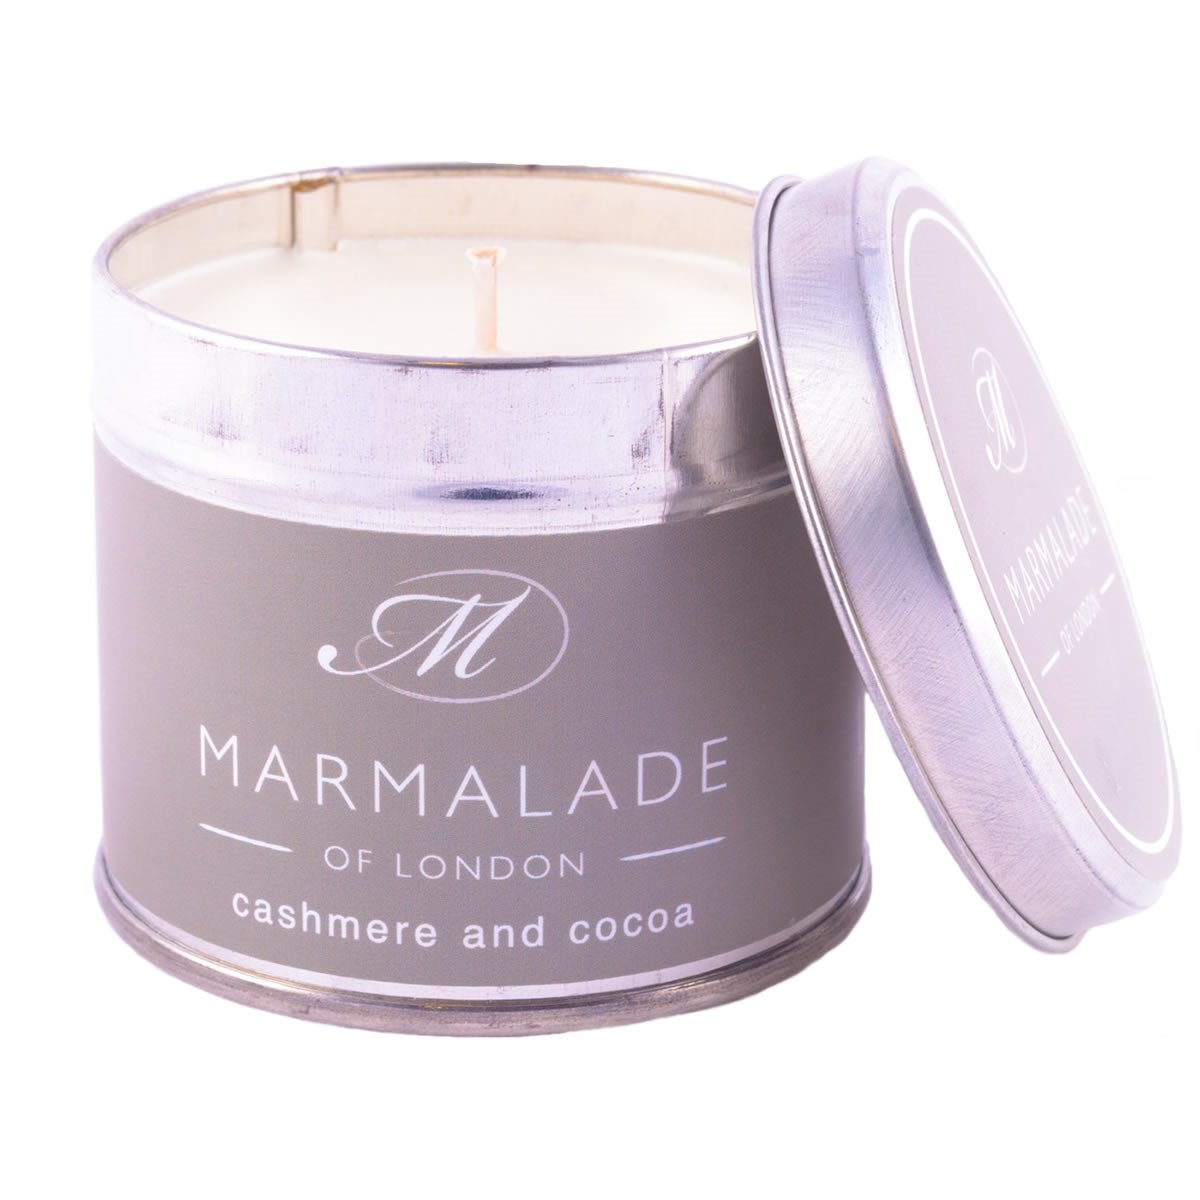 Marmalade of London Cashmere & Cocoa Candle